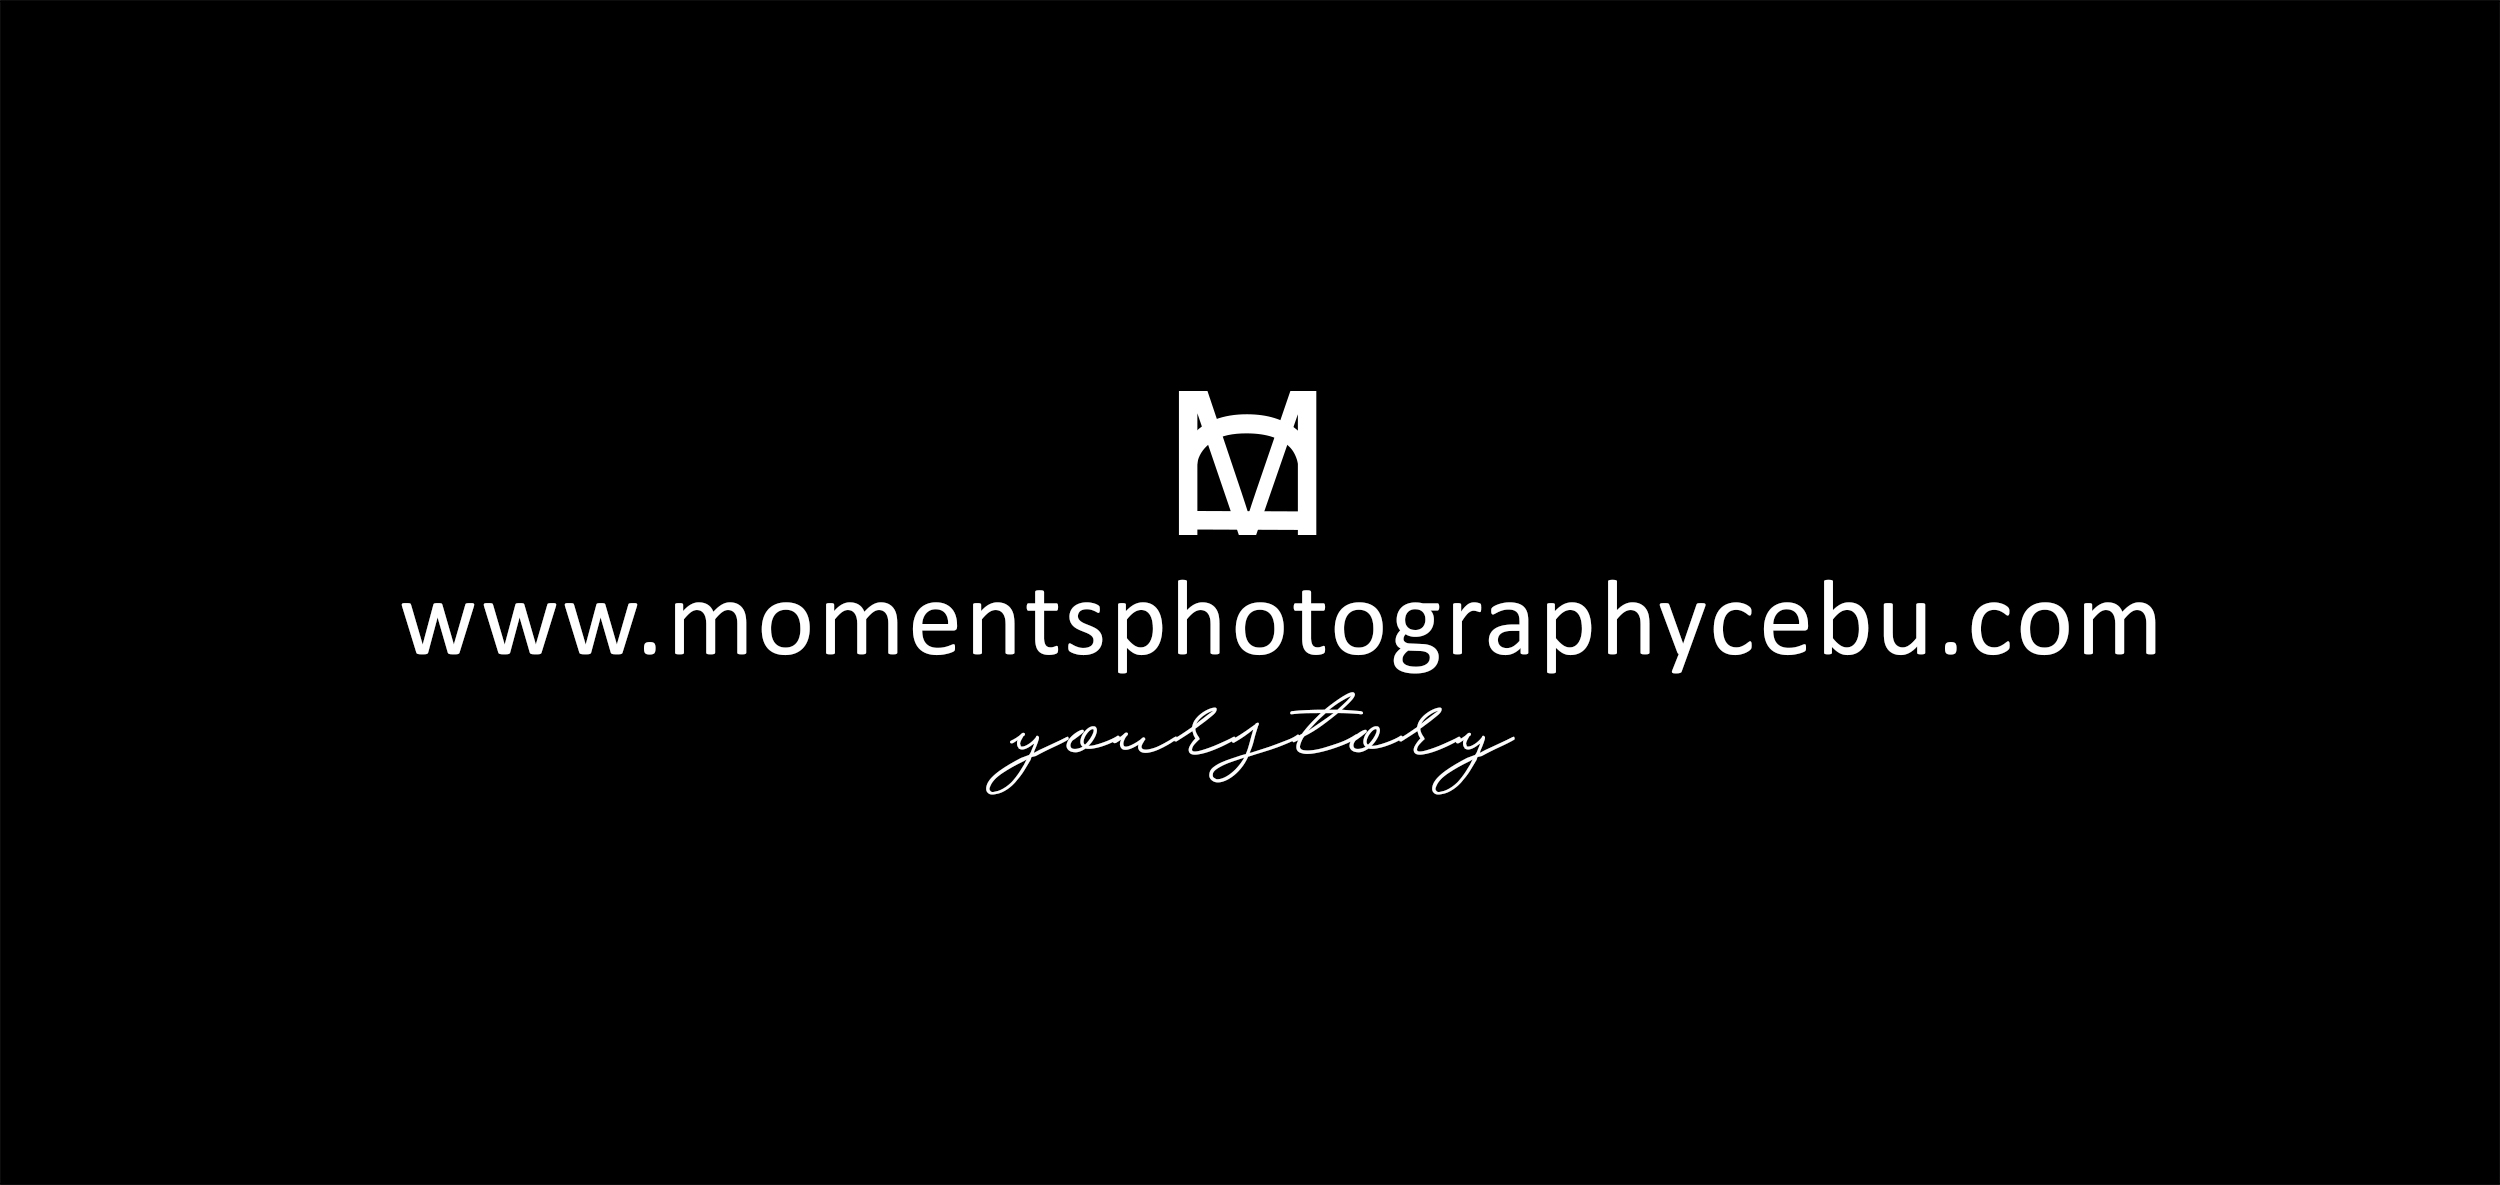 Moments Photography Cebu - Capturing Your Moments and Your Story